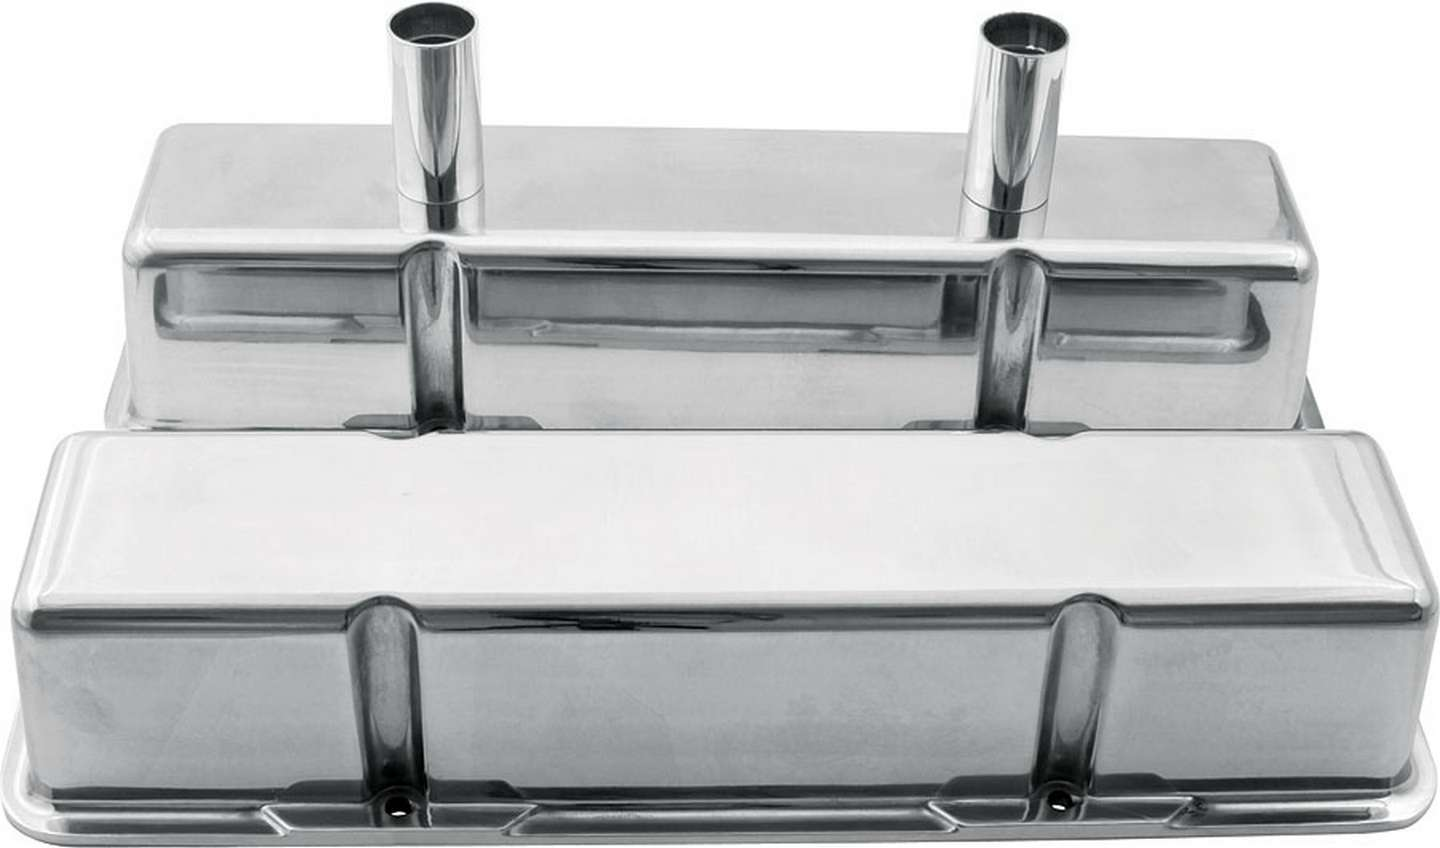 Allstar Performance 26139 Valve Cover, Tall, Breather Tubes, Aluminum, Polished, Small Block Chevy, Pair